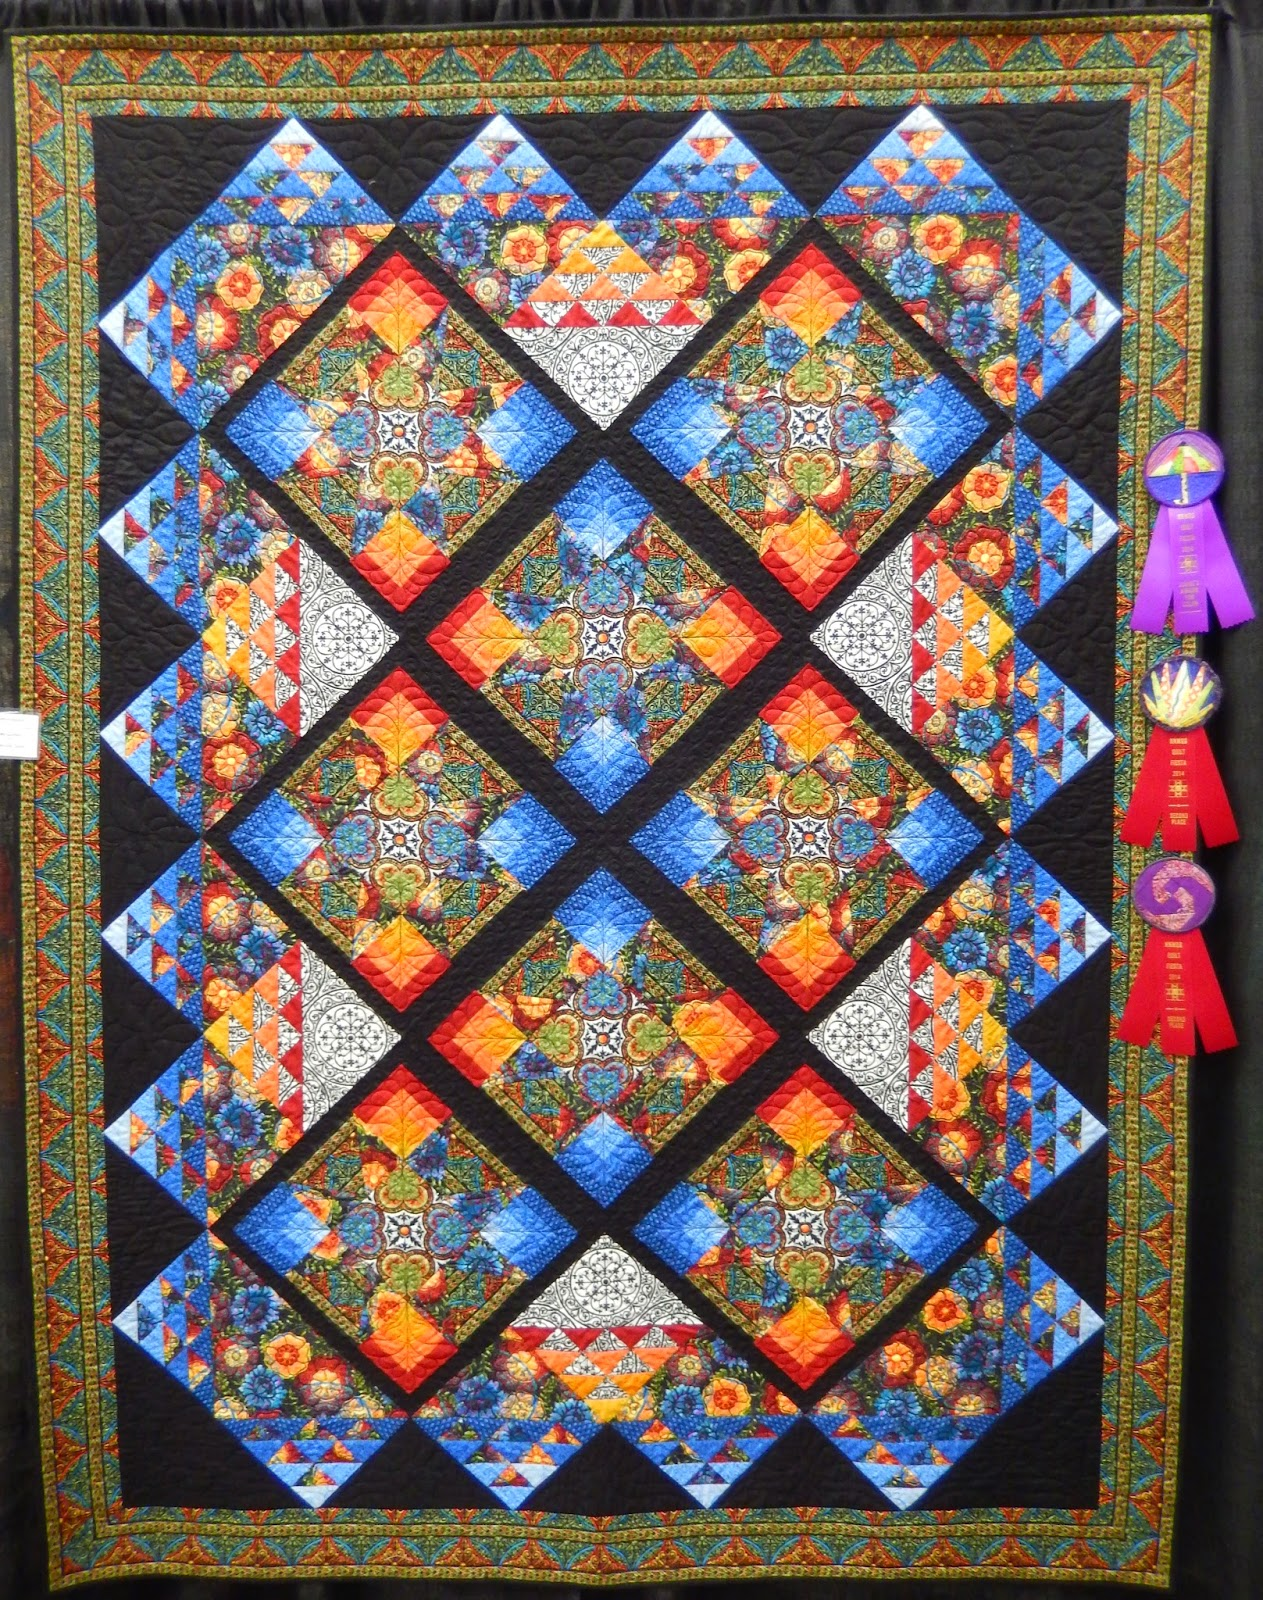 Quilting Mod Quilt Fiesta Traditional Quilts